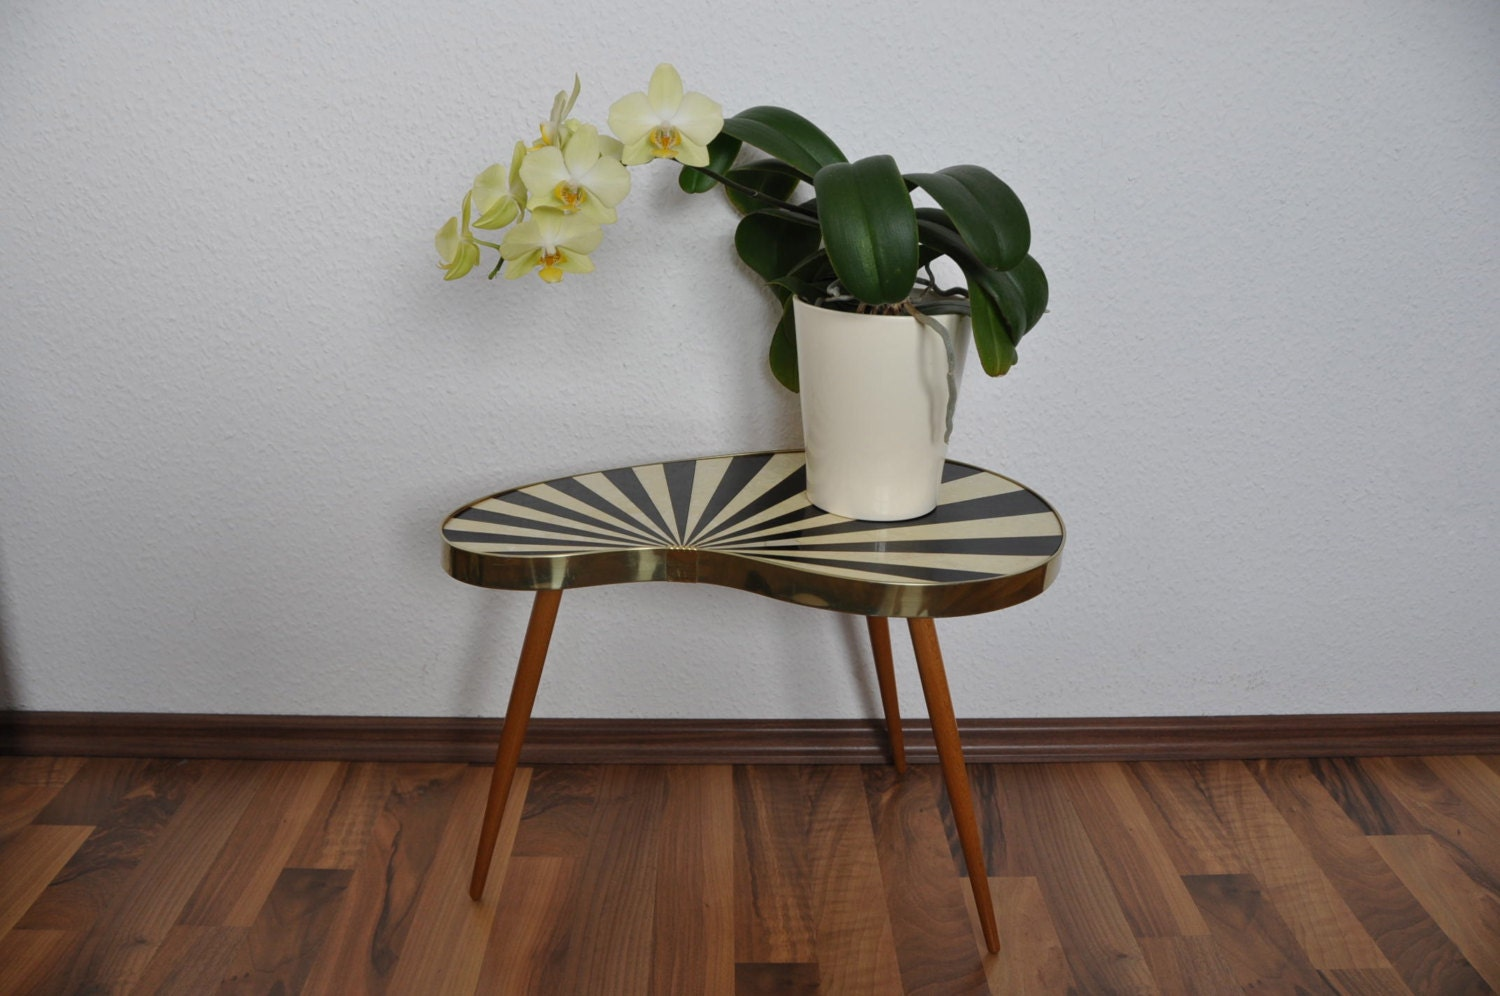 original mid century plant stand 1950s small by berlinerstrasse. Black Bedroom Furniture Sets. Home Design Ideas